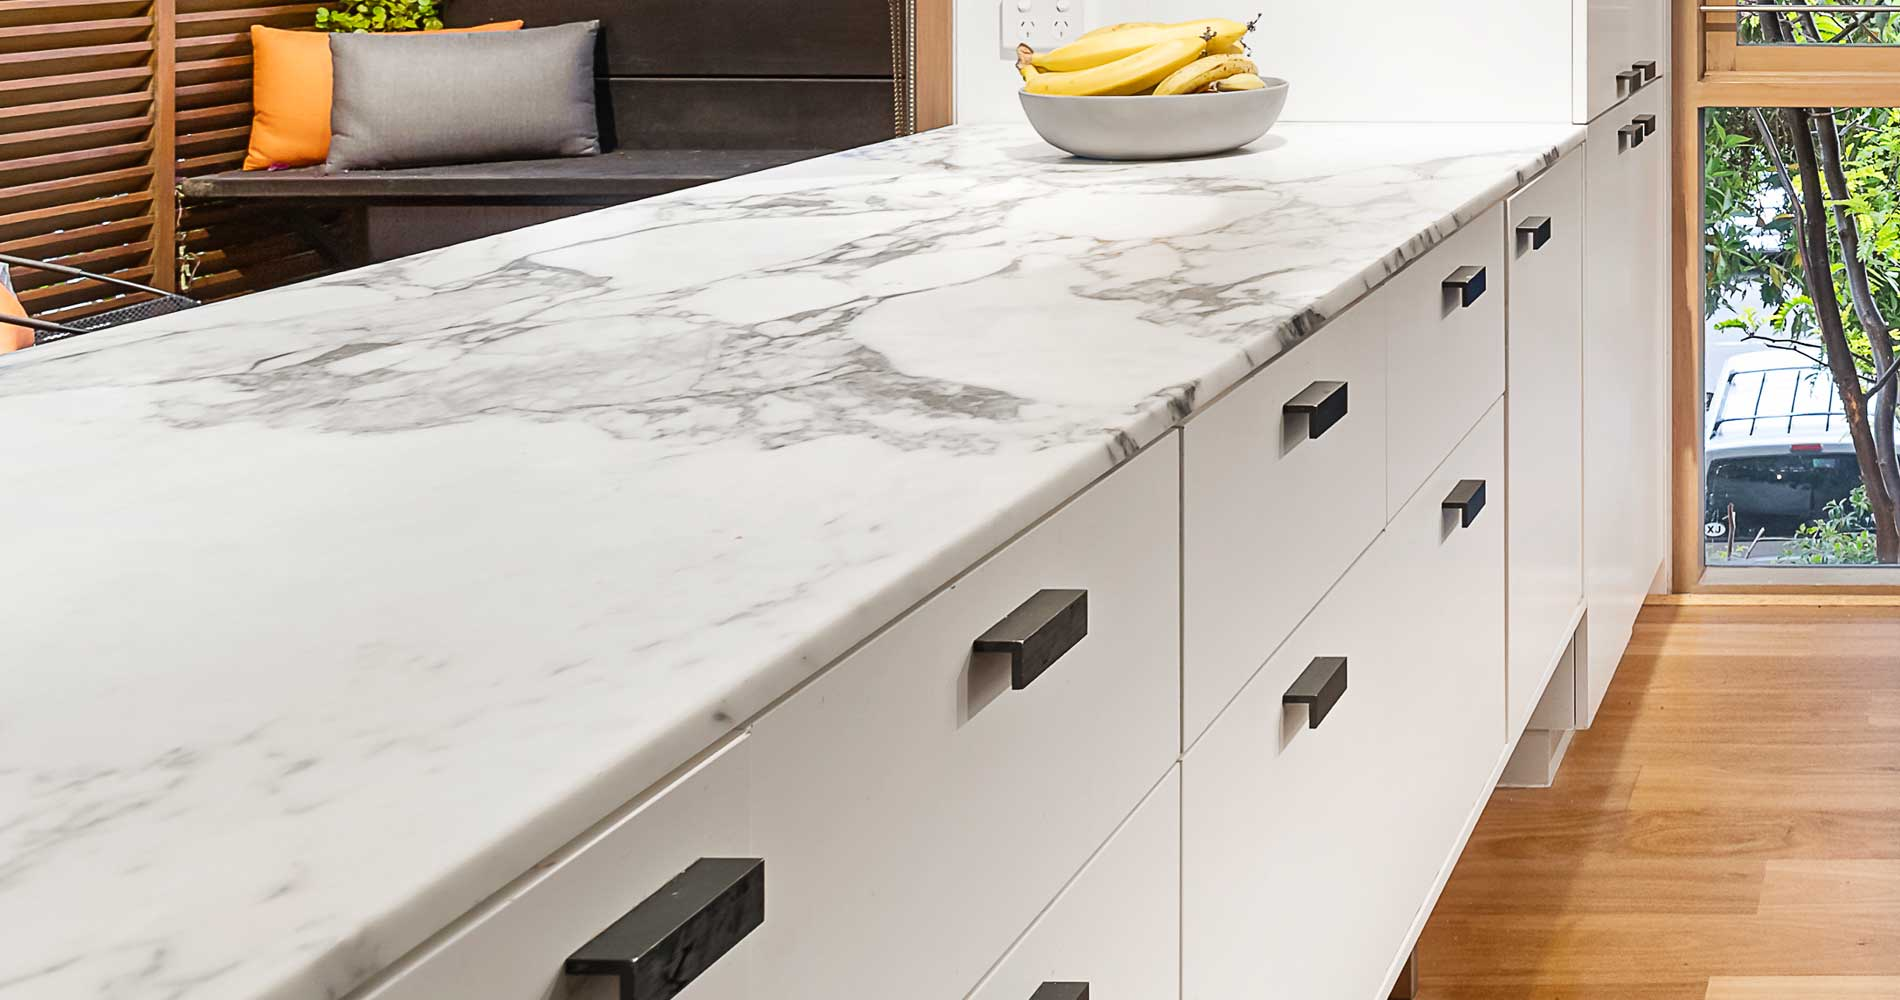 HOW TO REMOVE SCRATCHES FROM KITCHEN WORKTOPS